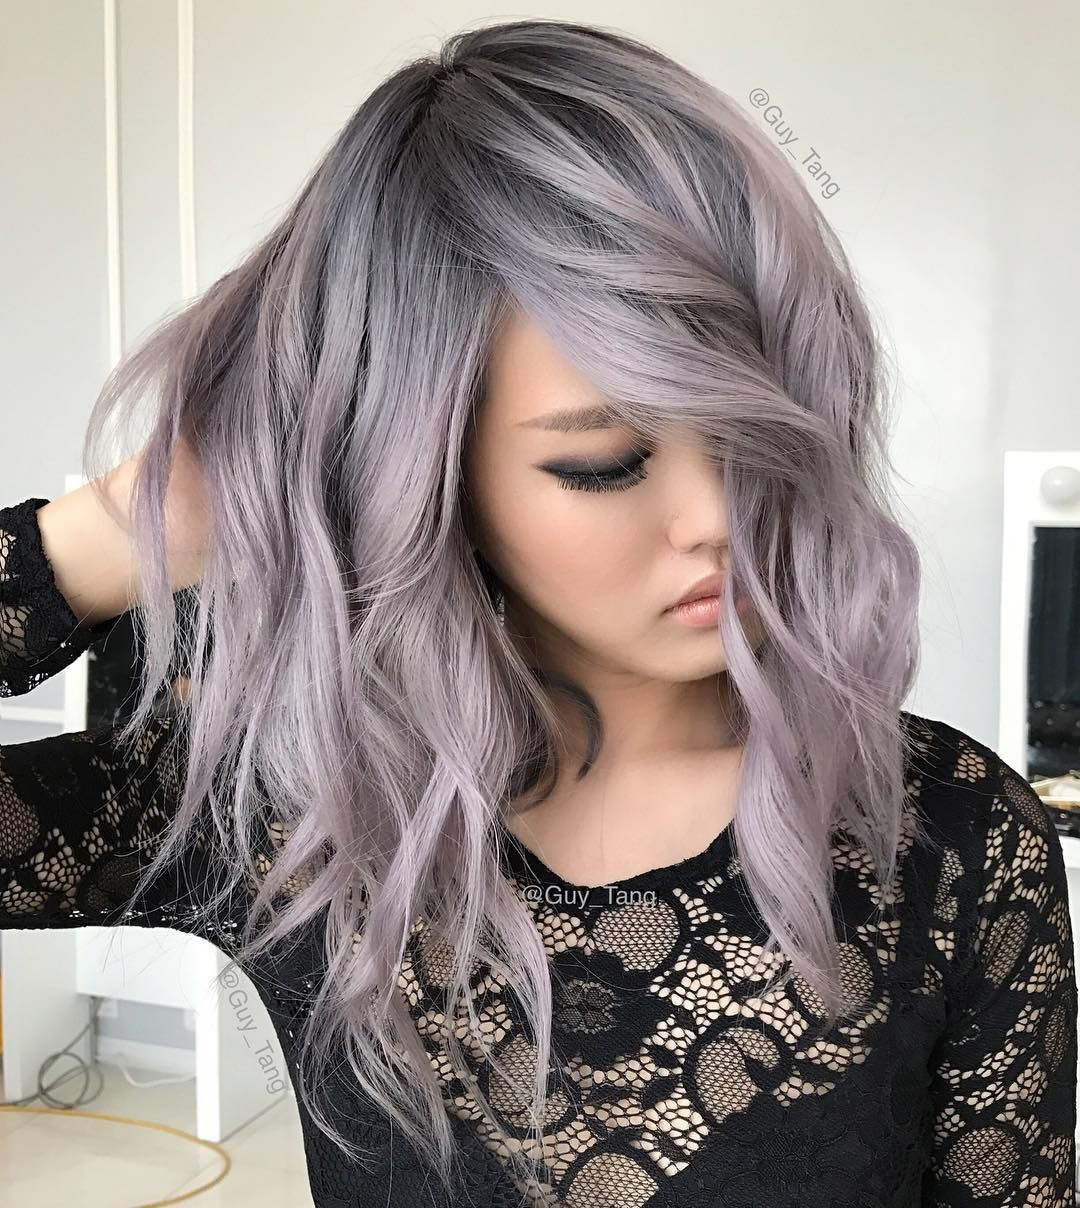 Gray Hair Wigs For African American Women Nakli Baal Price Grey Hair At 20 Male Hair Vig Salt And Pepper Hair Styles Bob Lace Front Wigs With Baby Hair